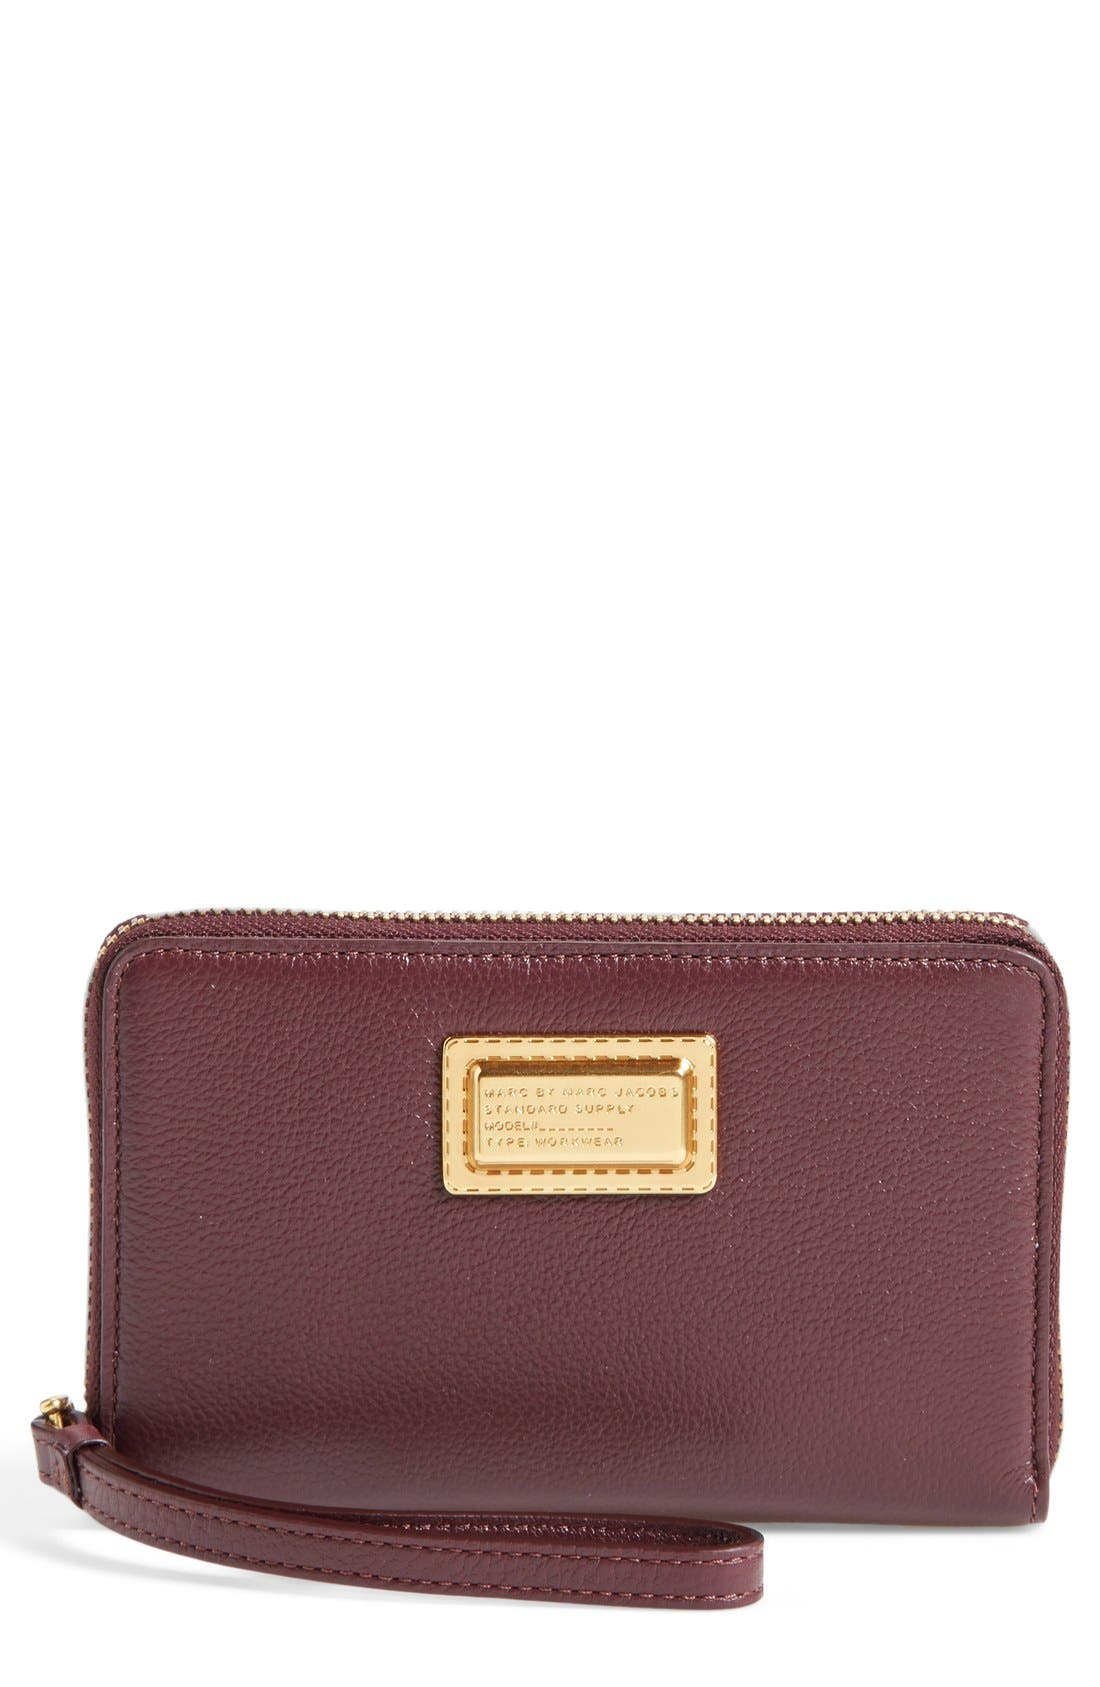 MARC BY MARC JACOBS 'Take Your Marc - Wingman' Smartphone Wristlet,                         Main,                         color, Cardamom